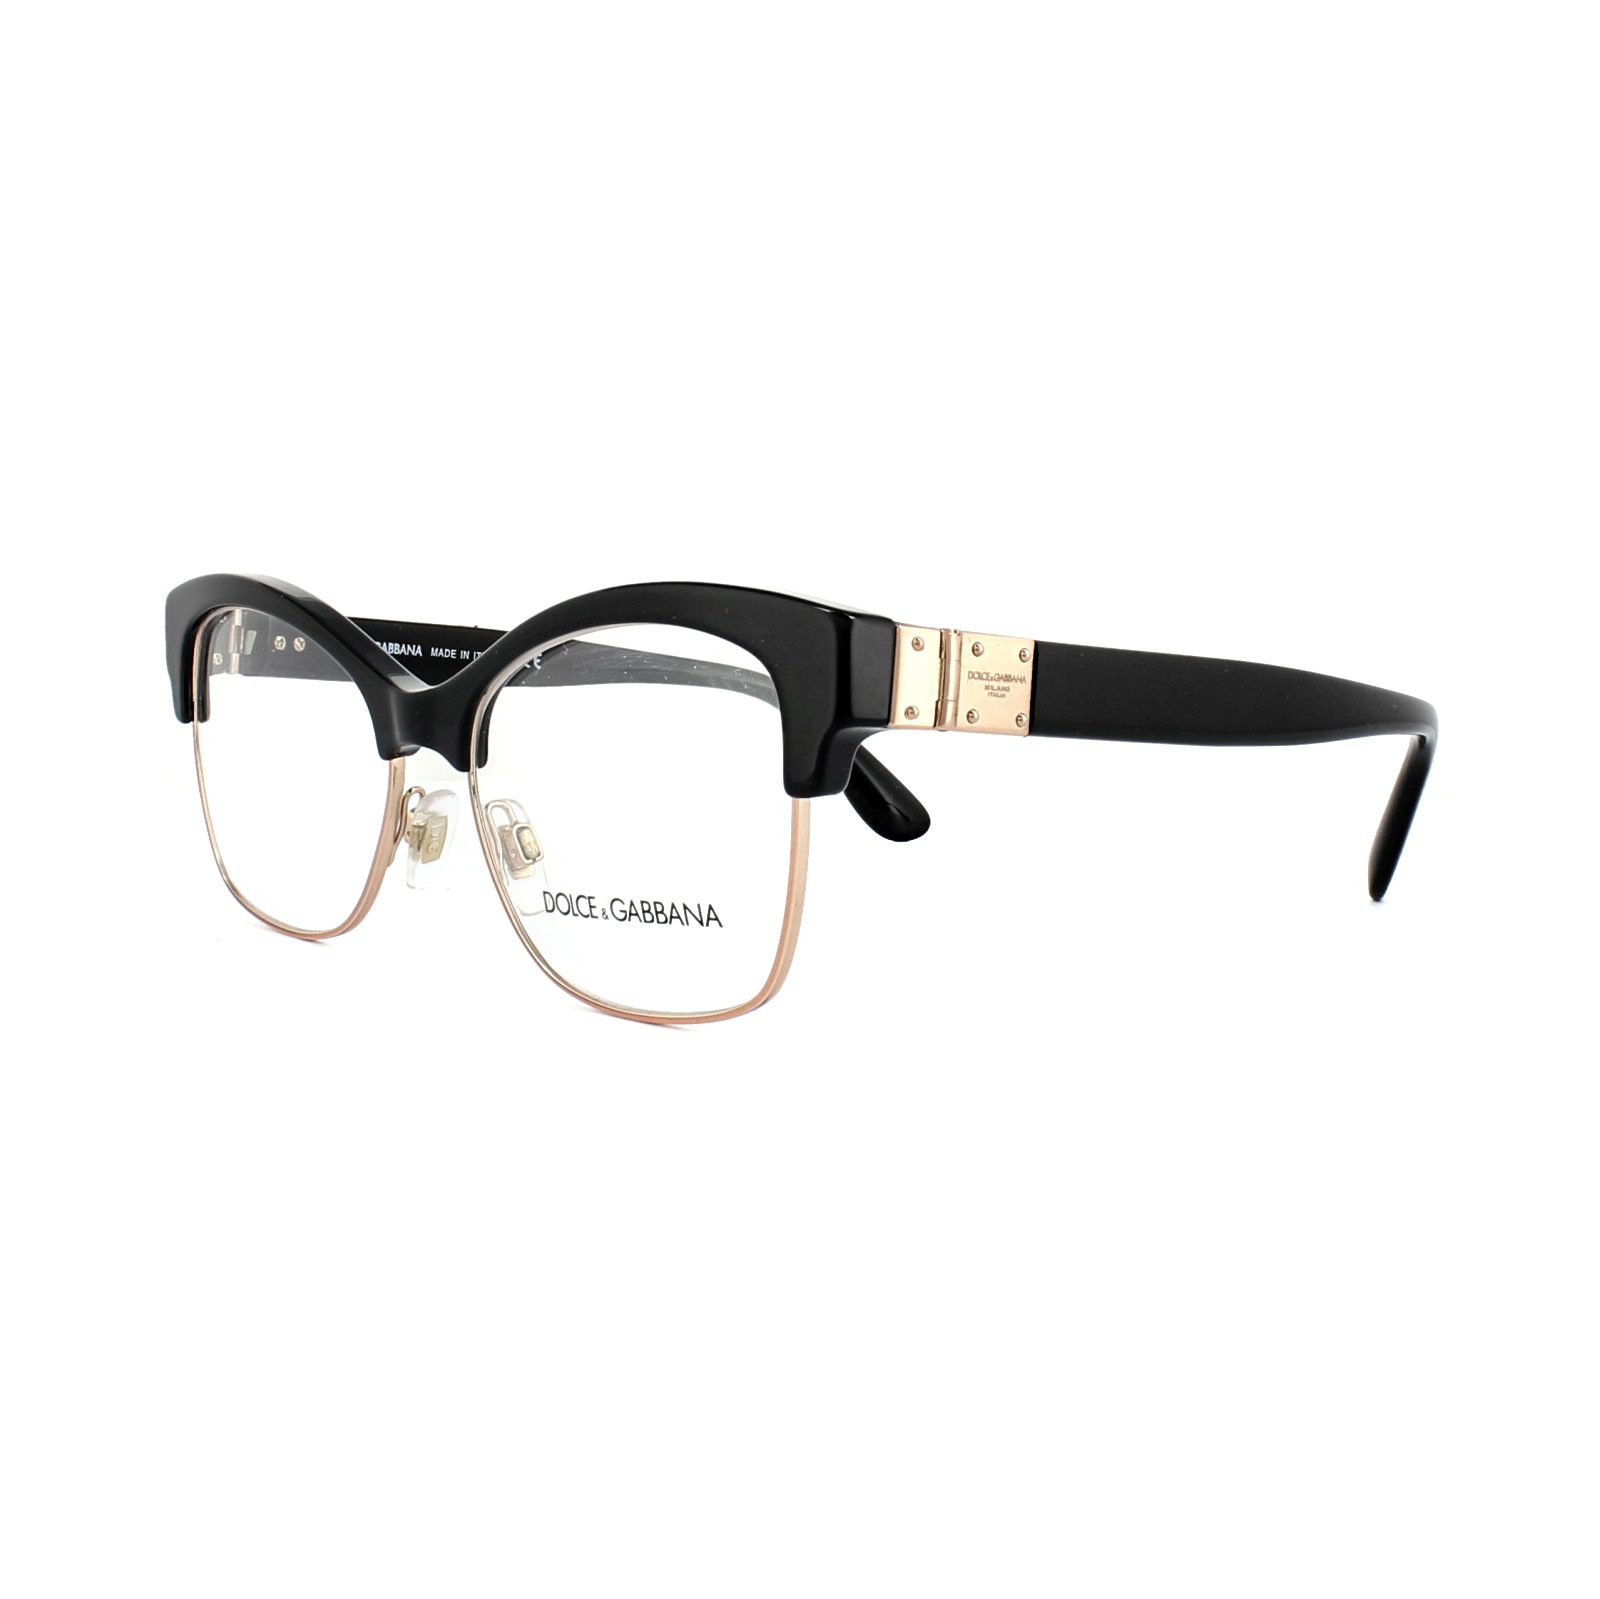 ae76999ab1e Sentinel Dolce and Gabbana Glasses Frames DG 3272 501 Black Womens 52mm